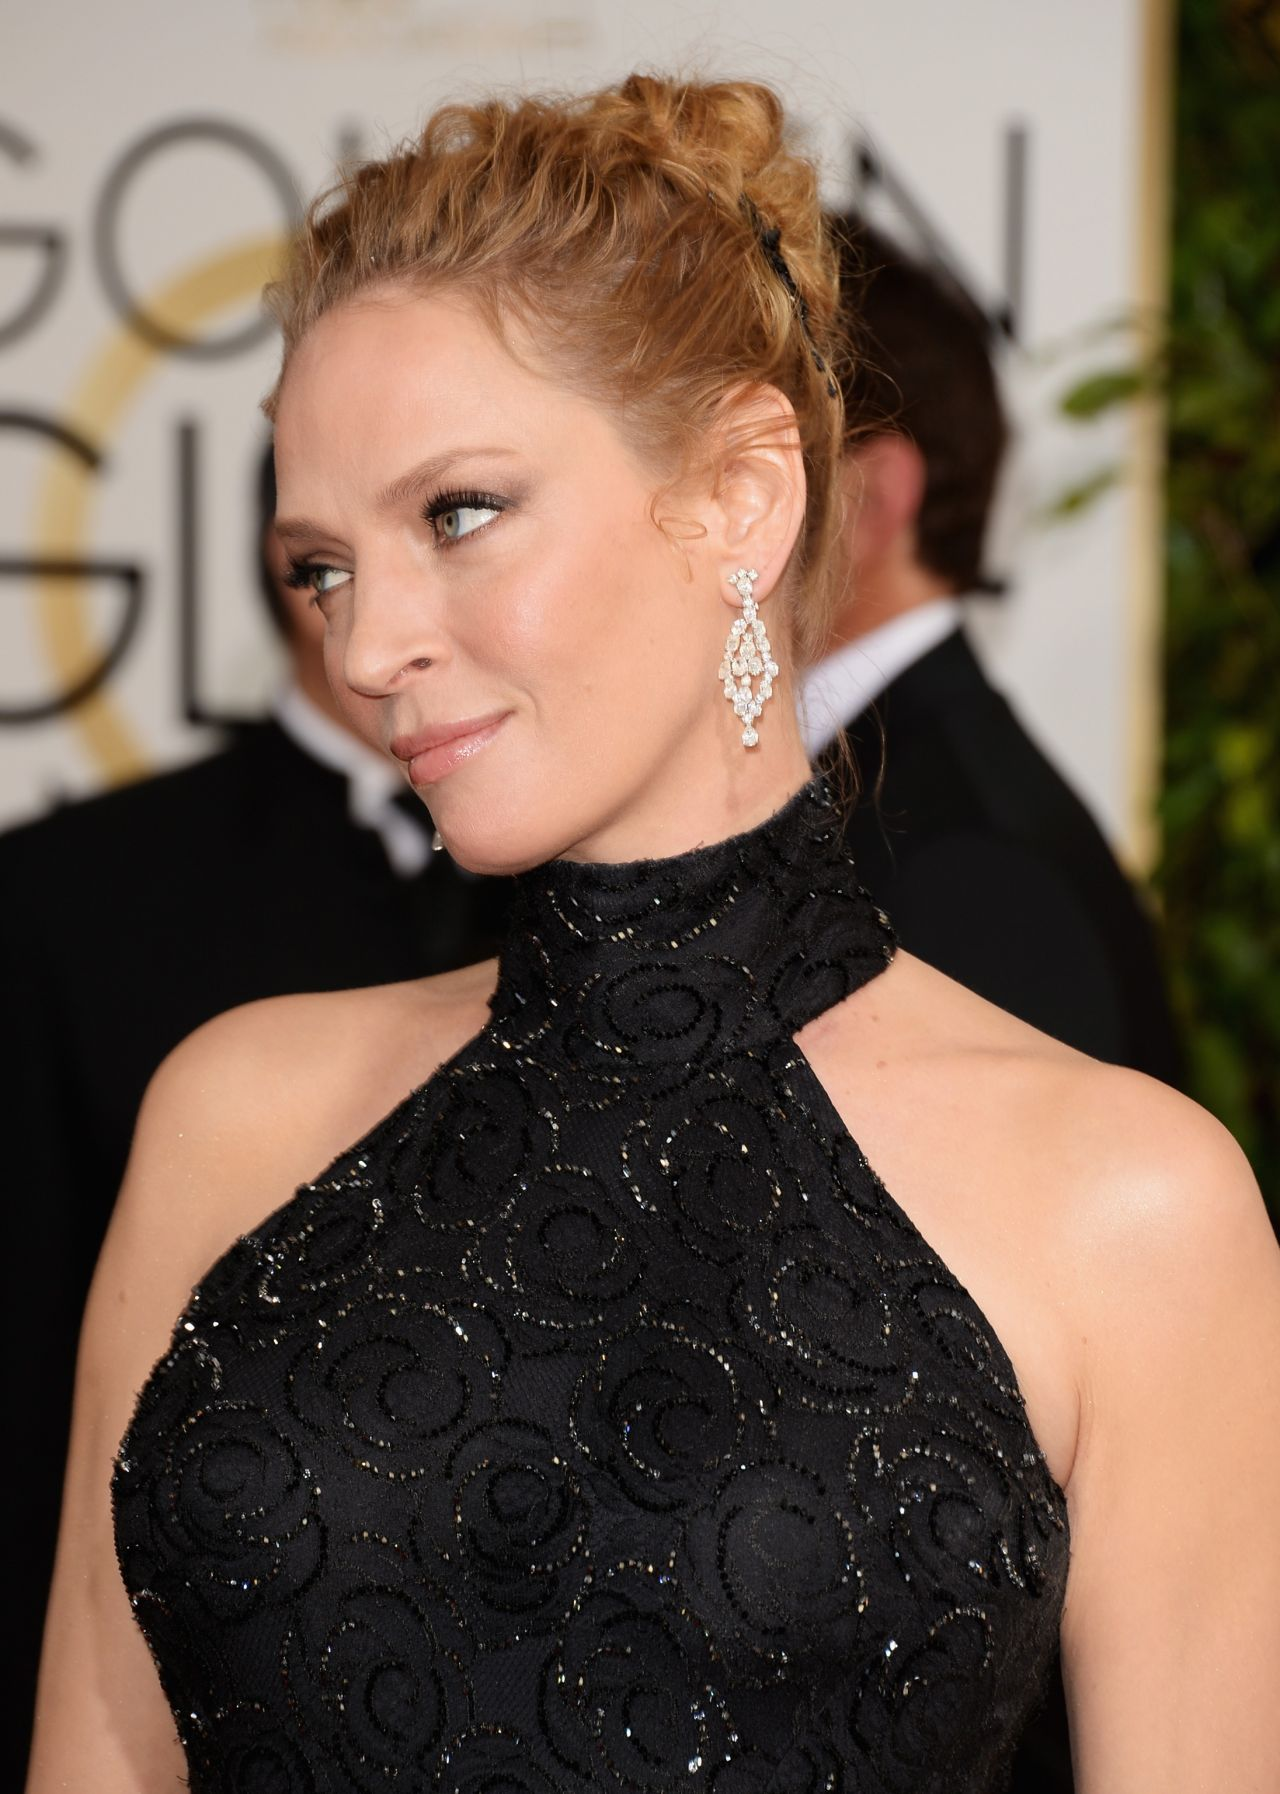 Uma Thurman at this year's Golden Globe Awards